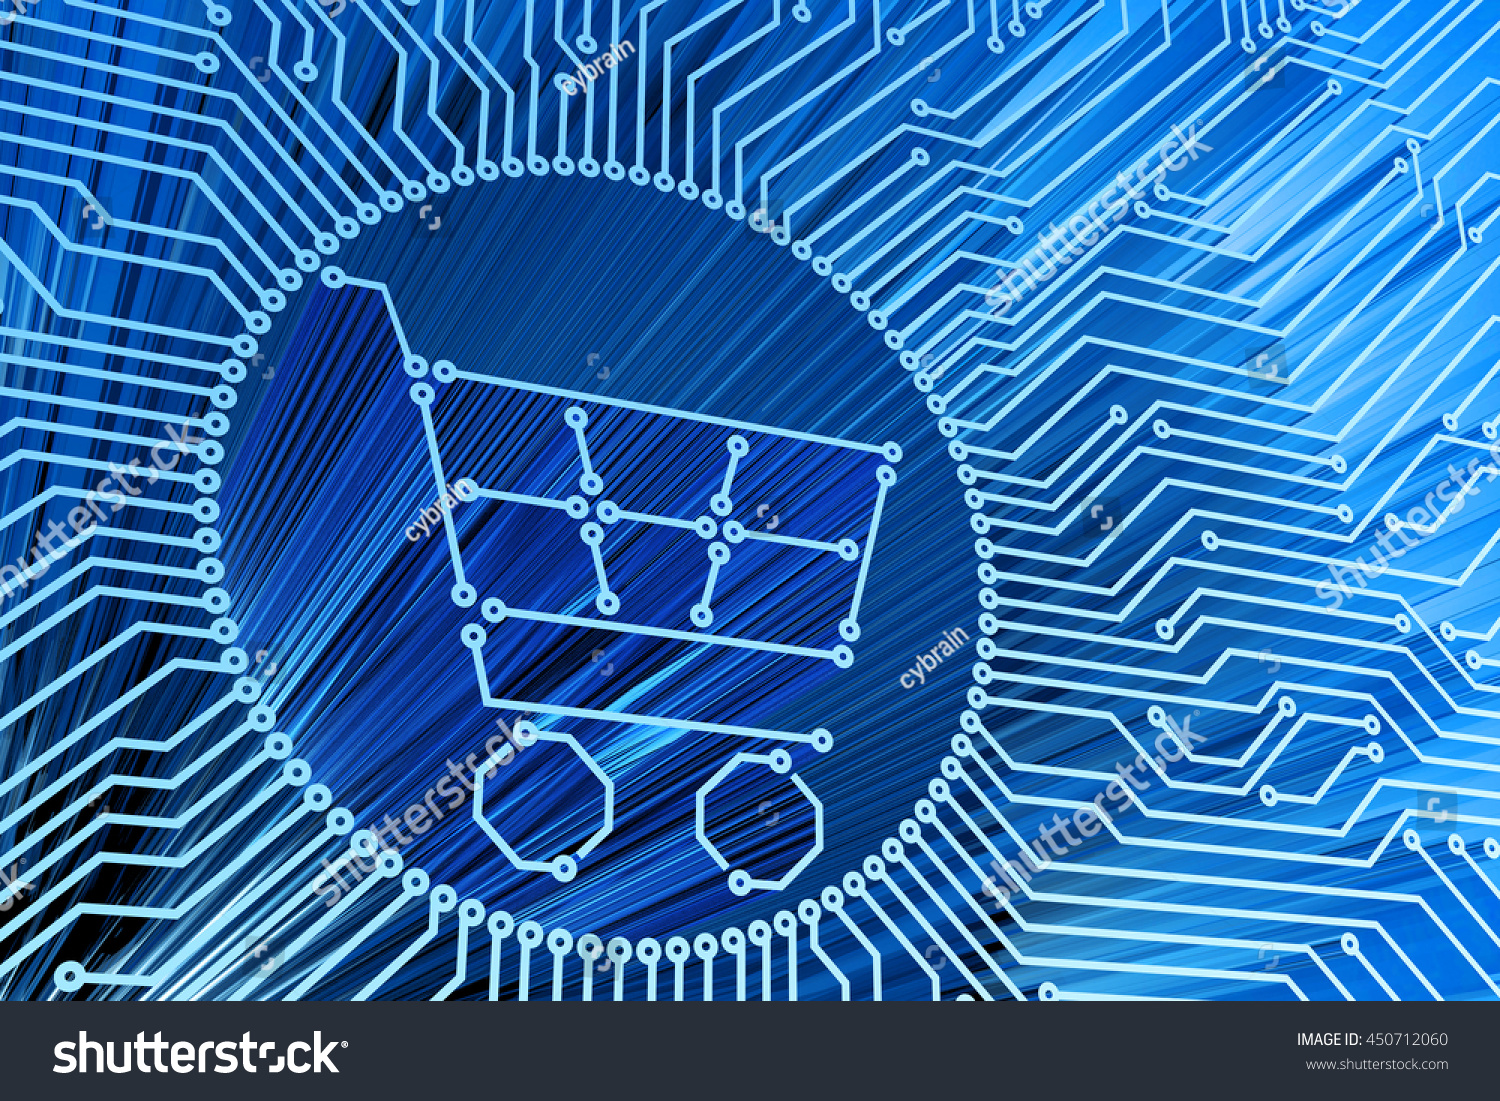 Ecommerce Internet Shopping Online Purchases Computer Stock Circuit Design E Commerce Technology And Electronic Concept